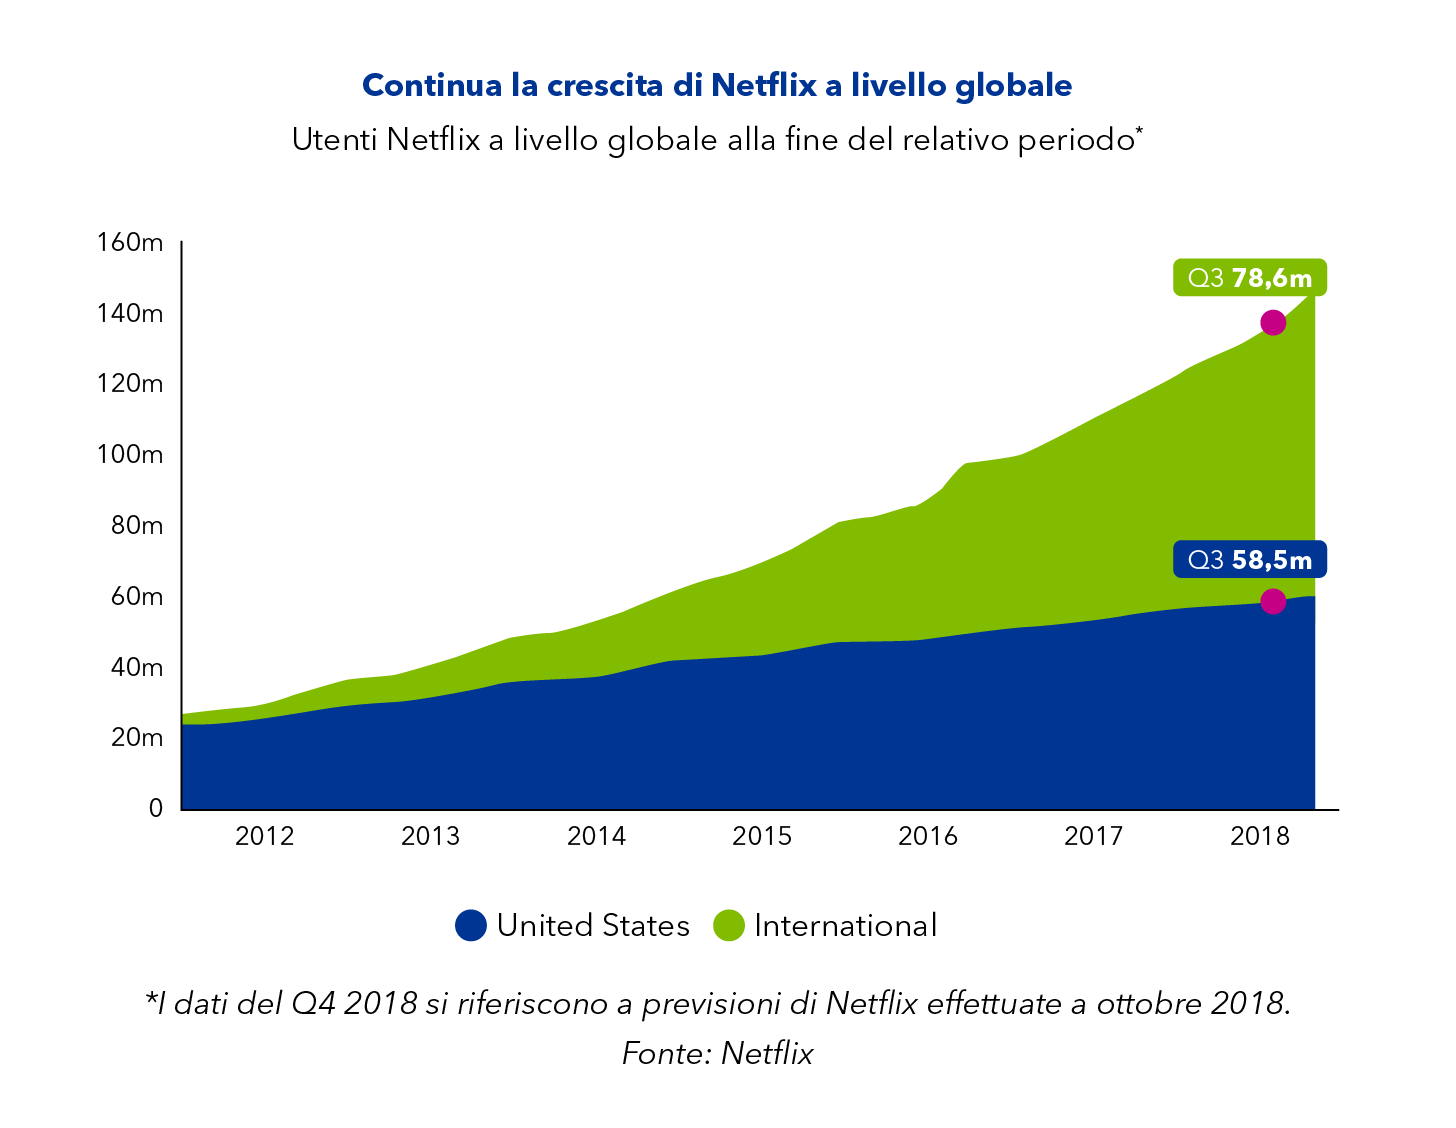 Netflix continues to grow internationally